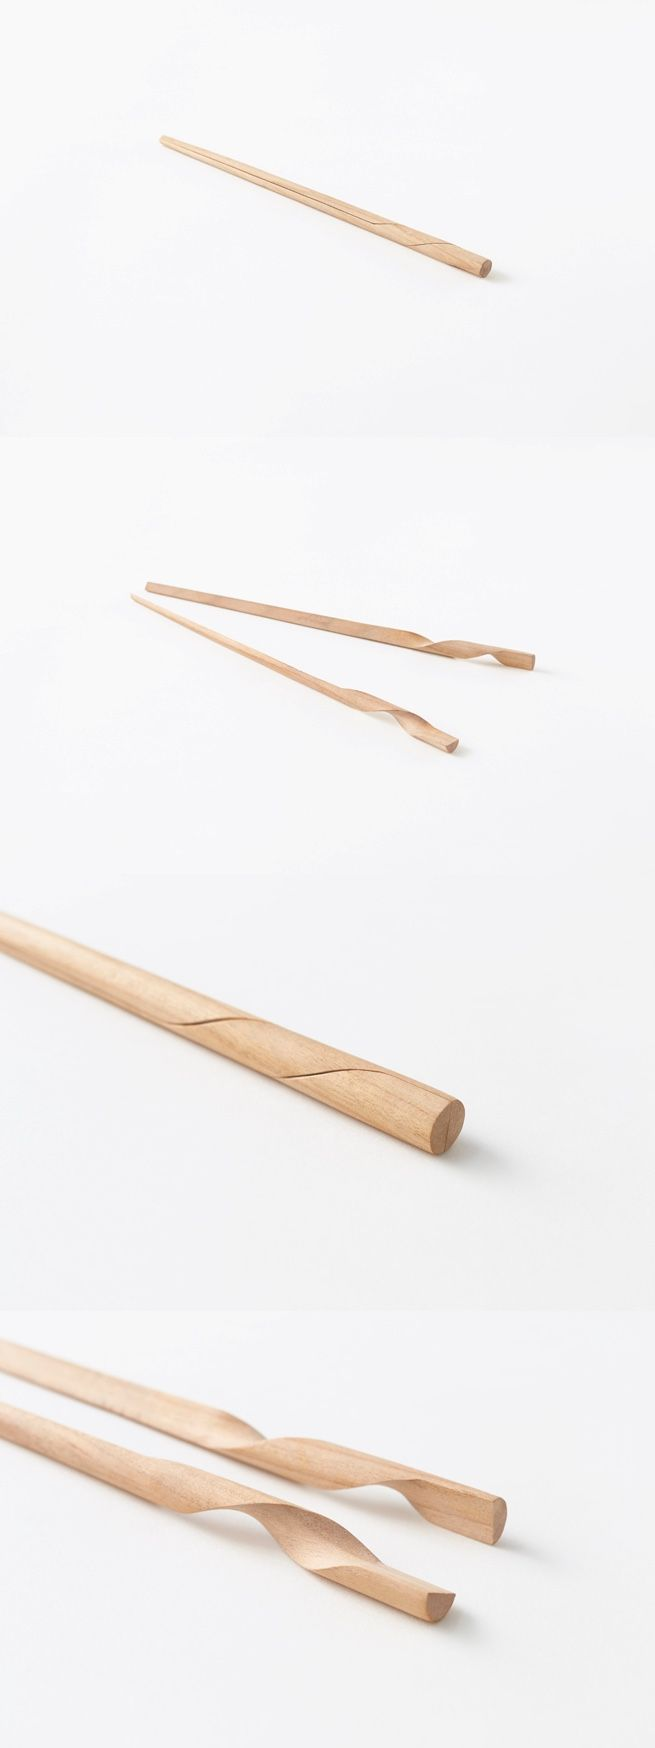 Two chopsticks in one.